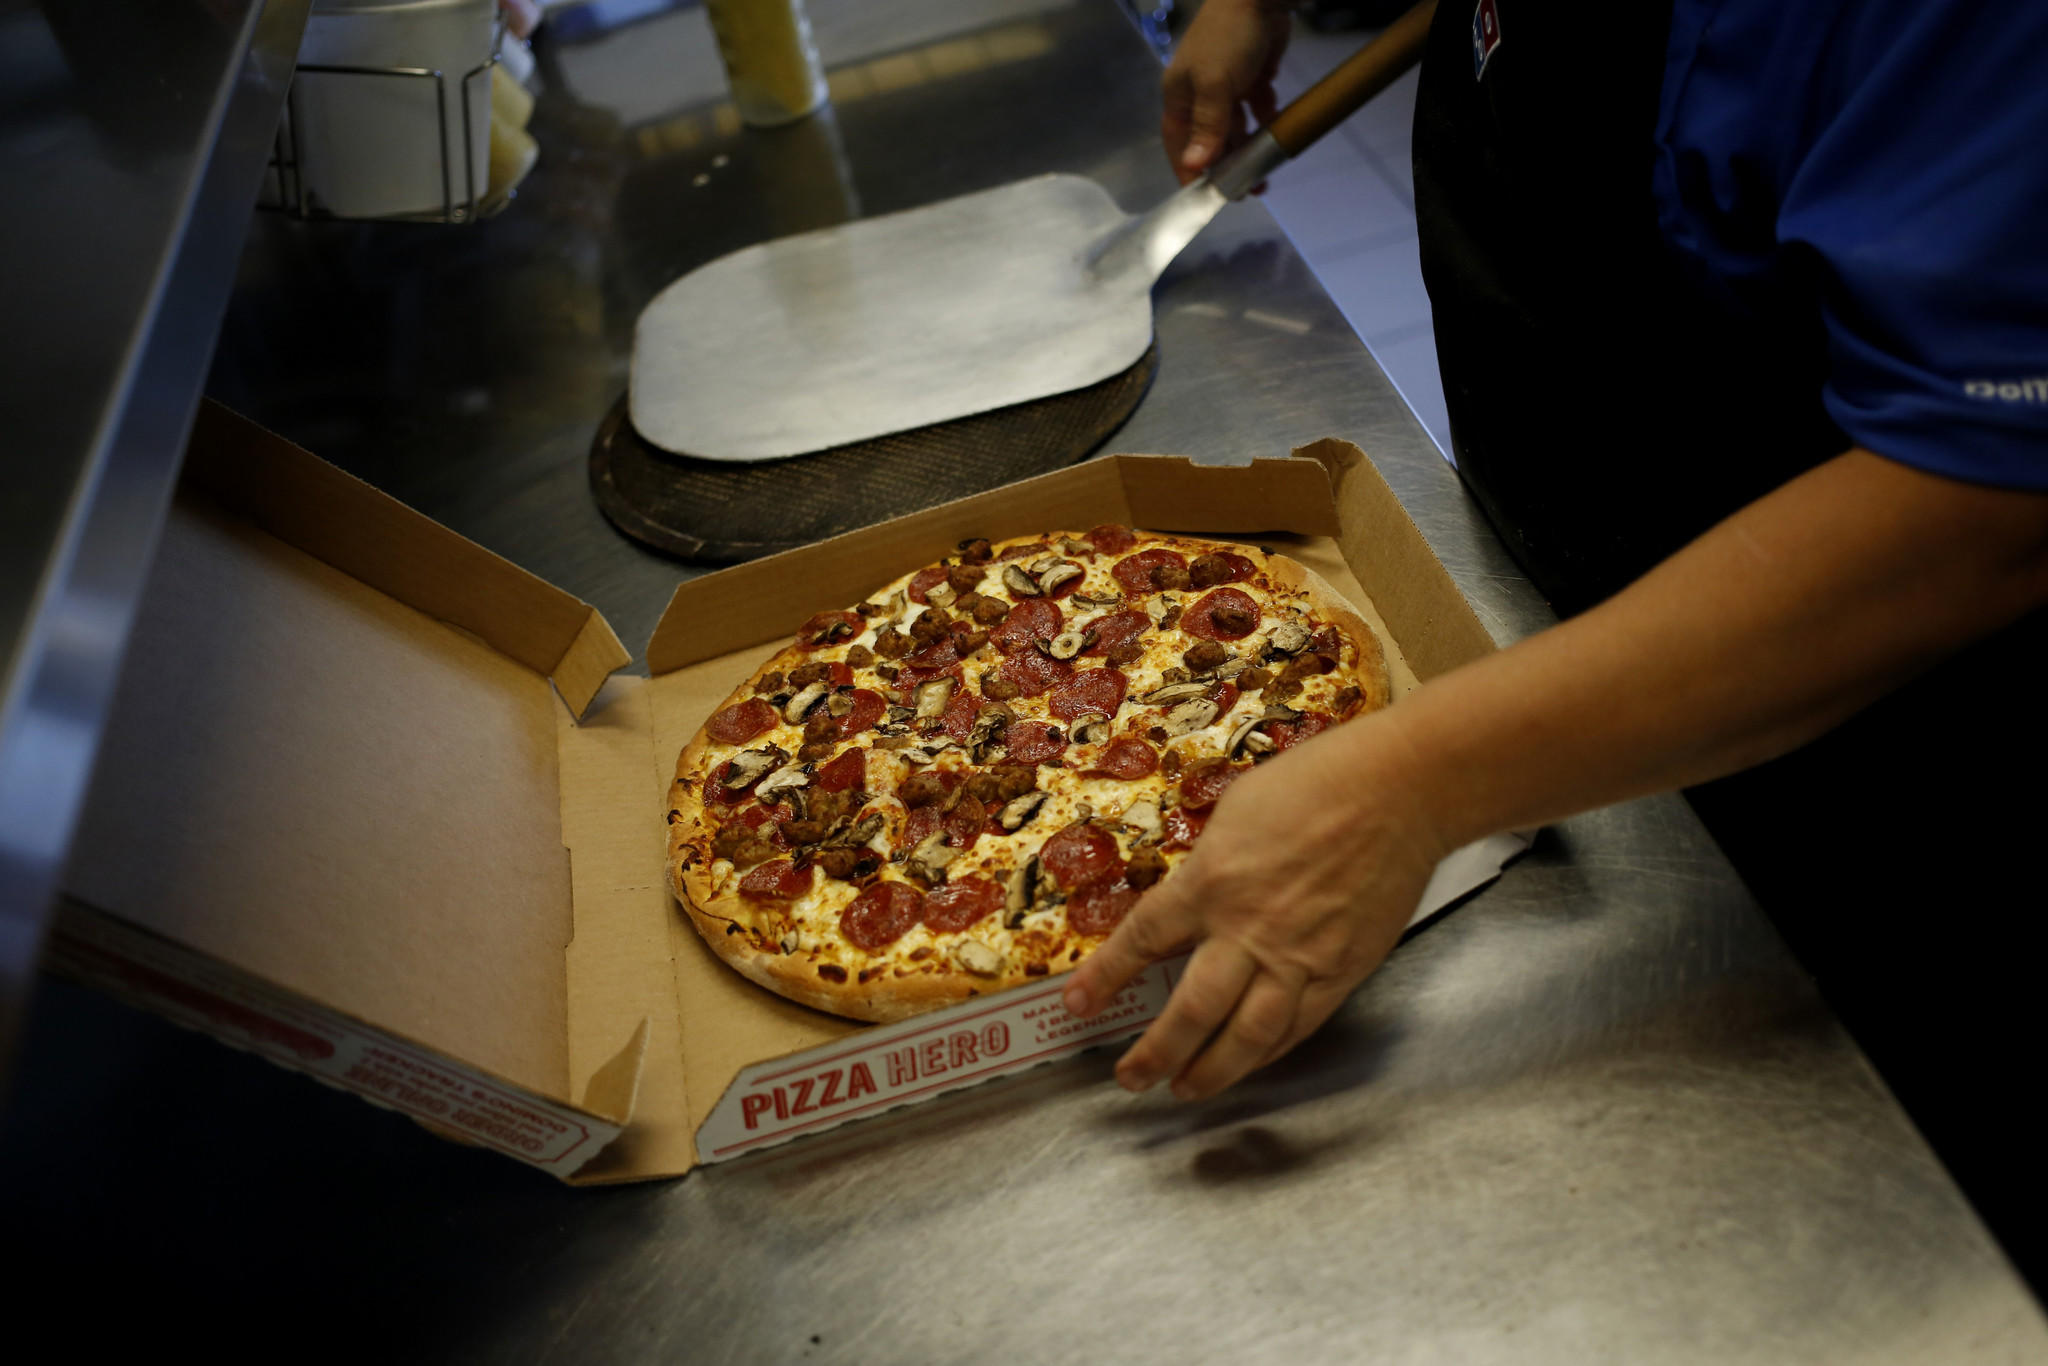 A Domino's worker boxes a pizza in Murray, Kentucky on Oct. 24, 2013.